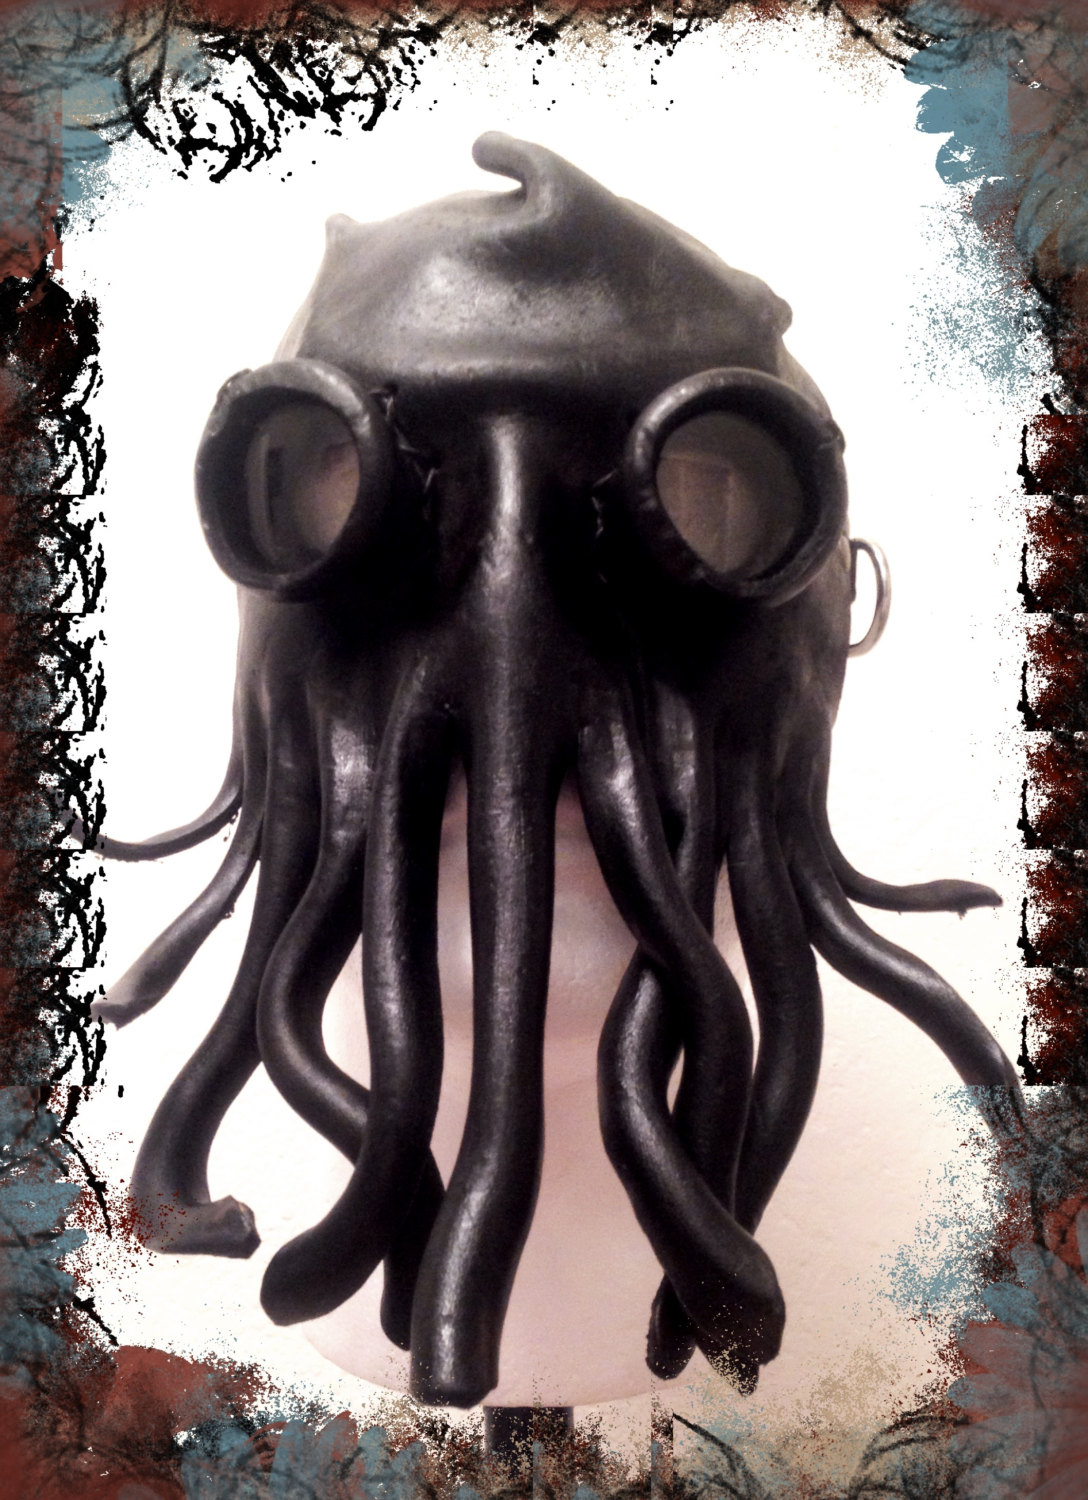 Cthulhu Cultist with Googles